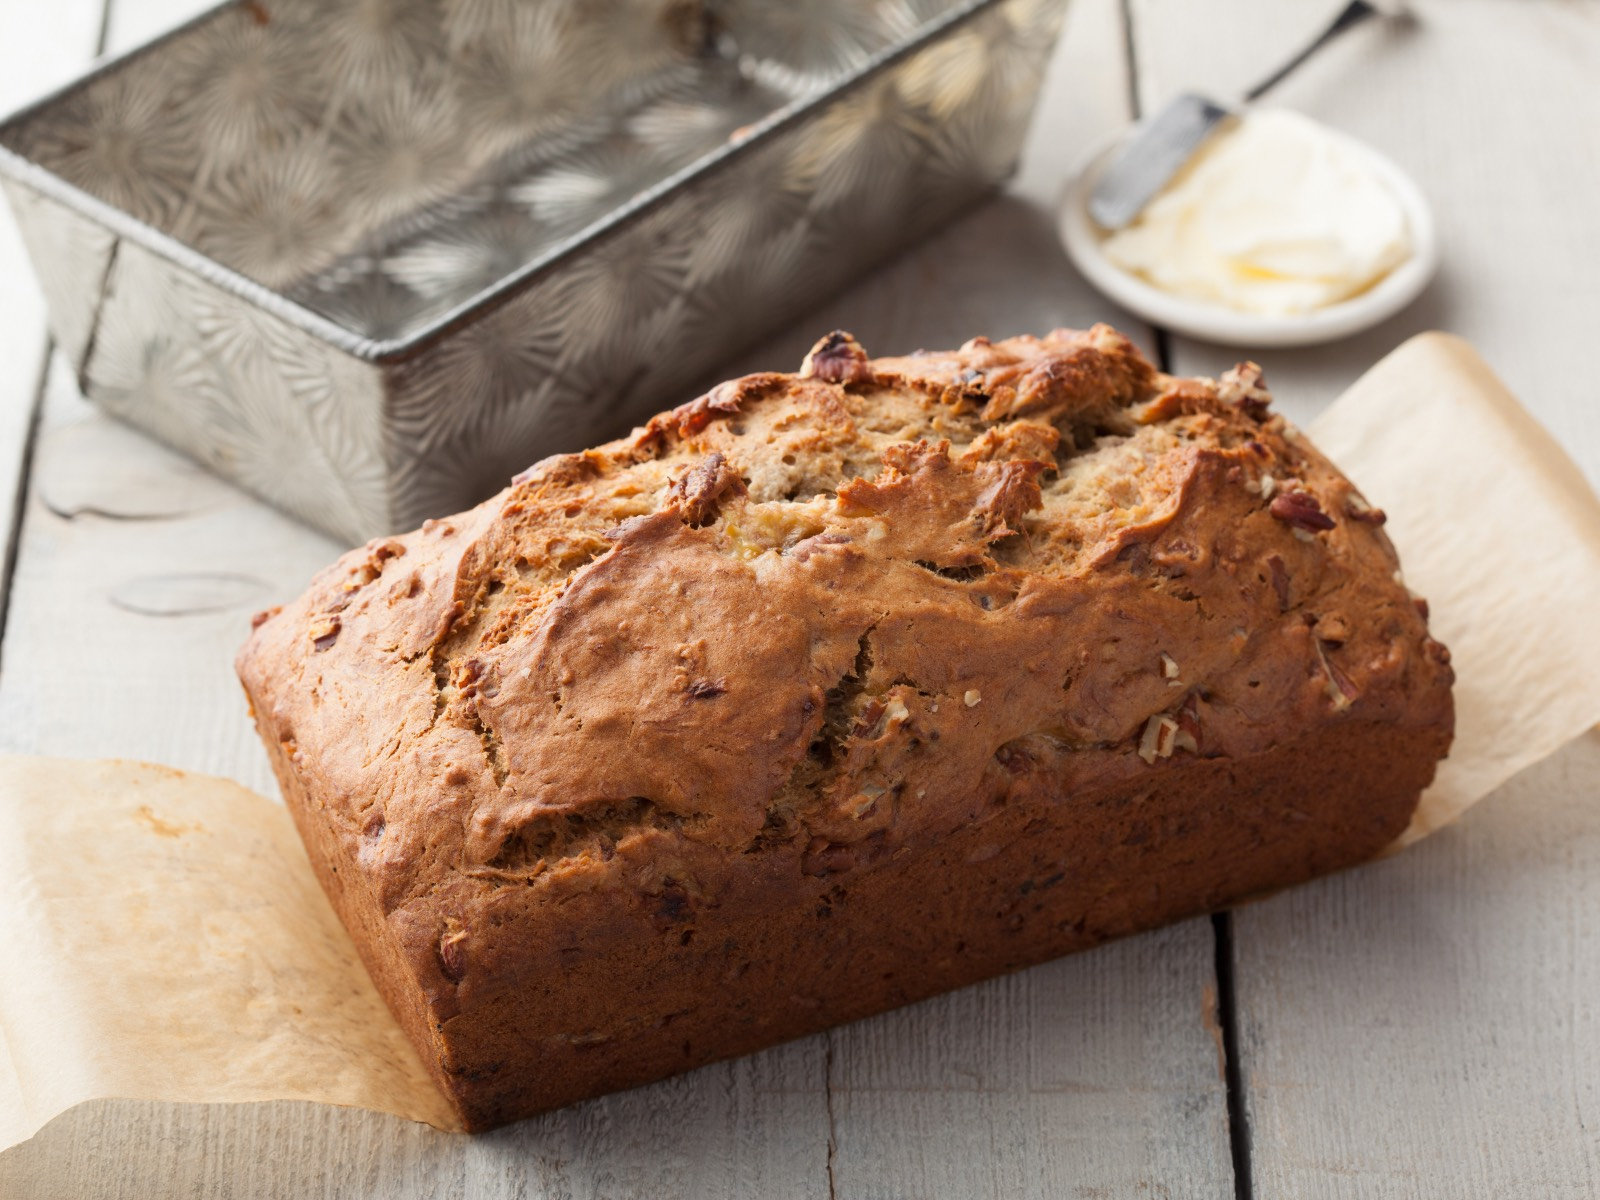 Super Delight: Extreme Nuts And Banana Bread - The Trent